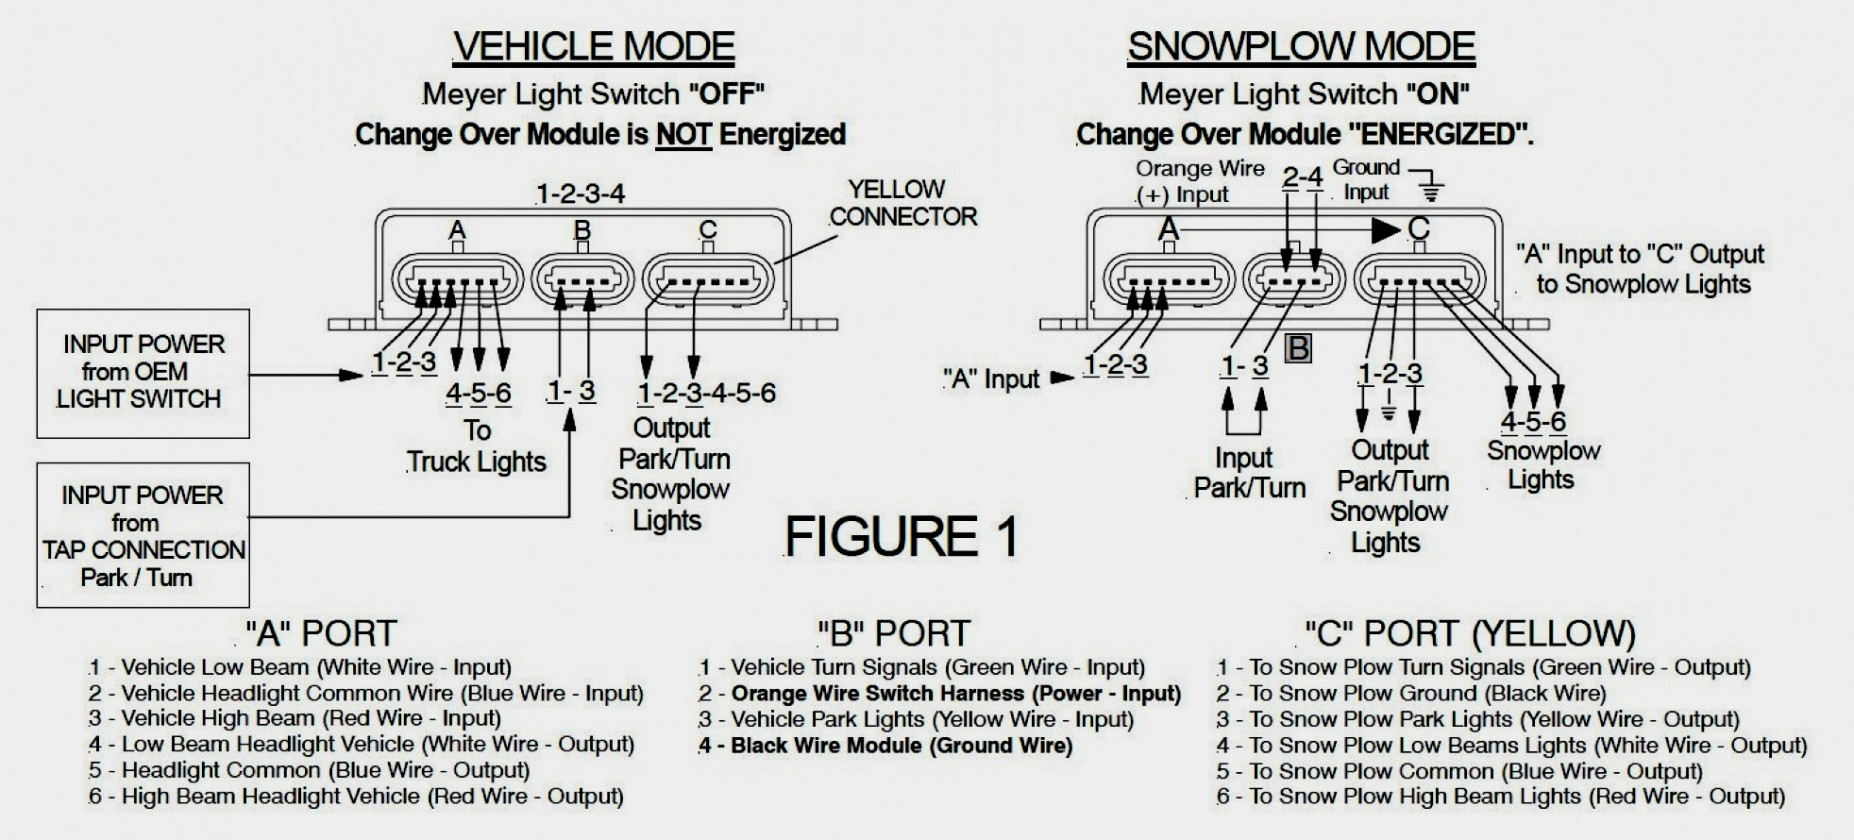 Meyer Snow Plow Wiring Diagram For Headlights - Wiring Diagrams Thumbs - Meyers Snowplow Wiring Diagram